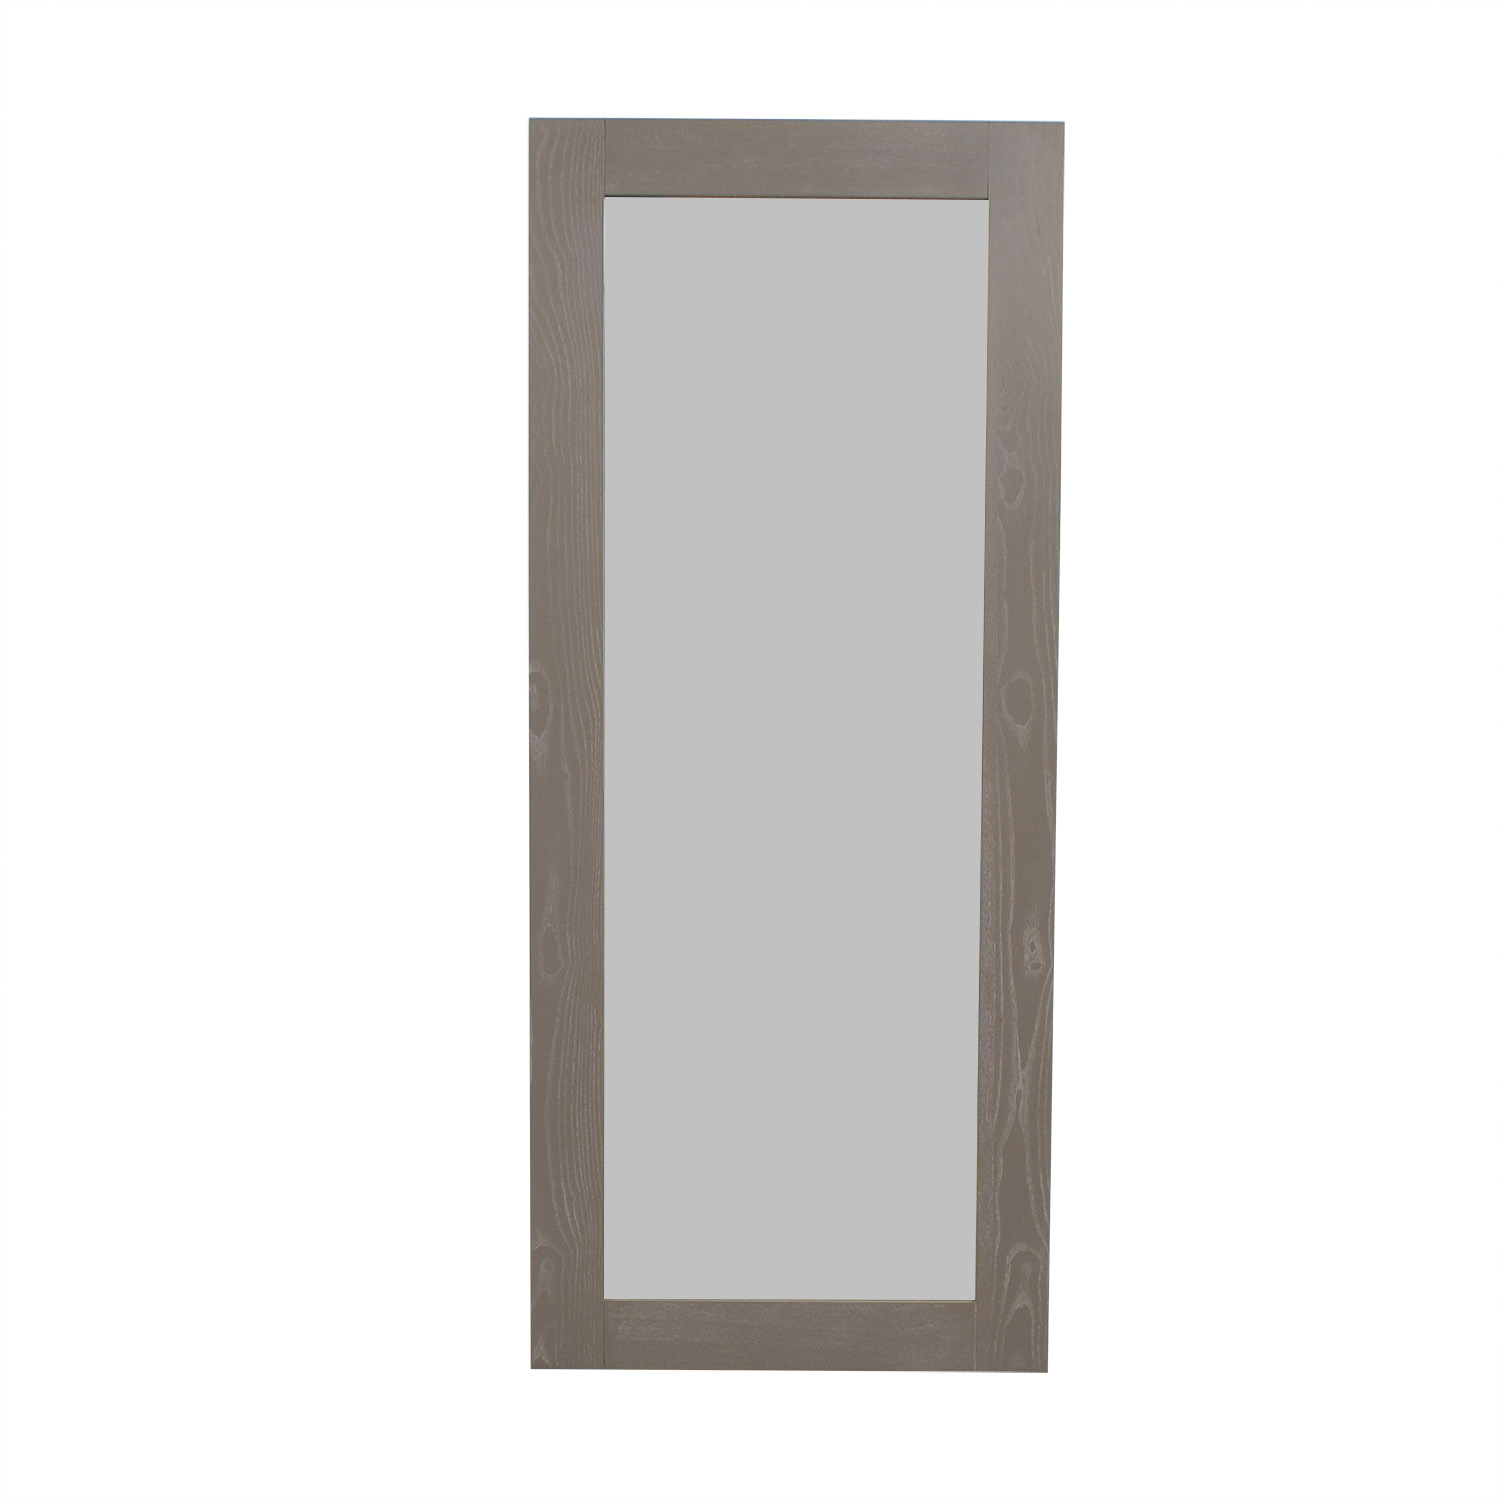 CB2 CB2 Grey Hanging/Leaning Floor Mirror Mirrors